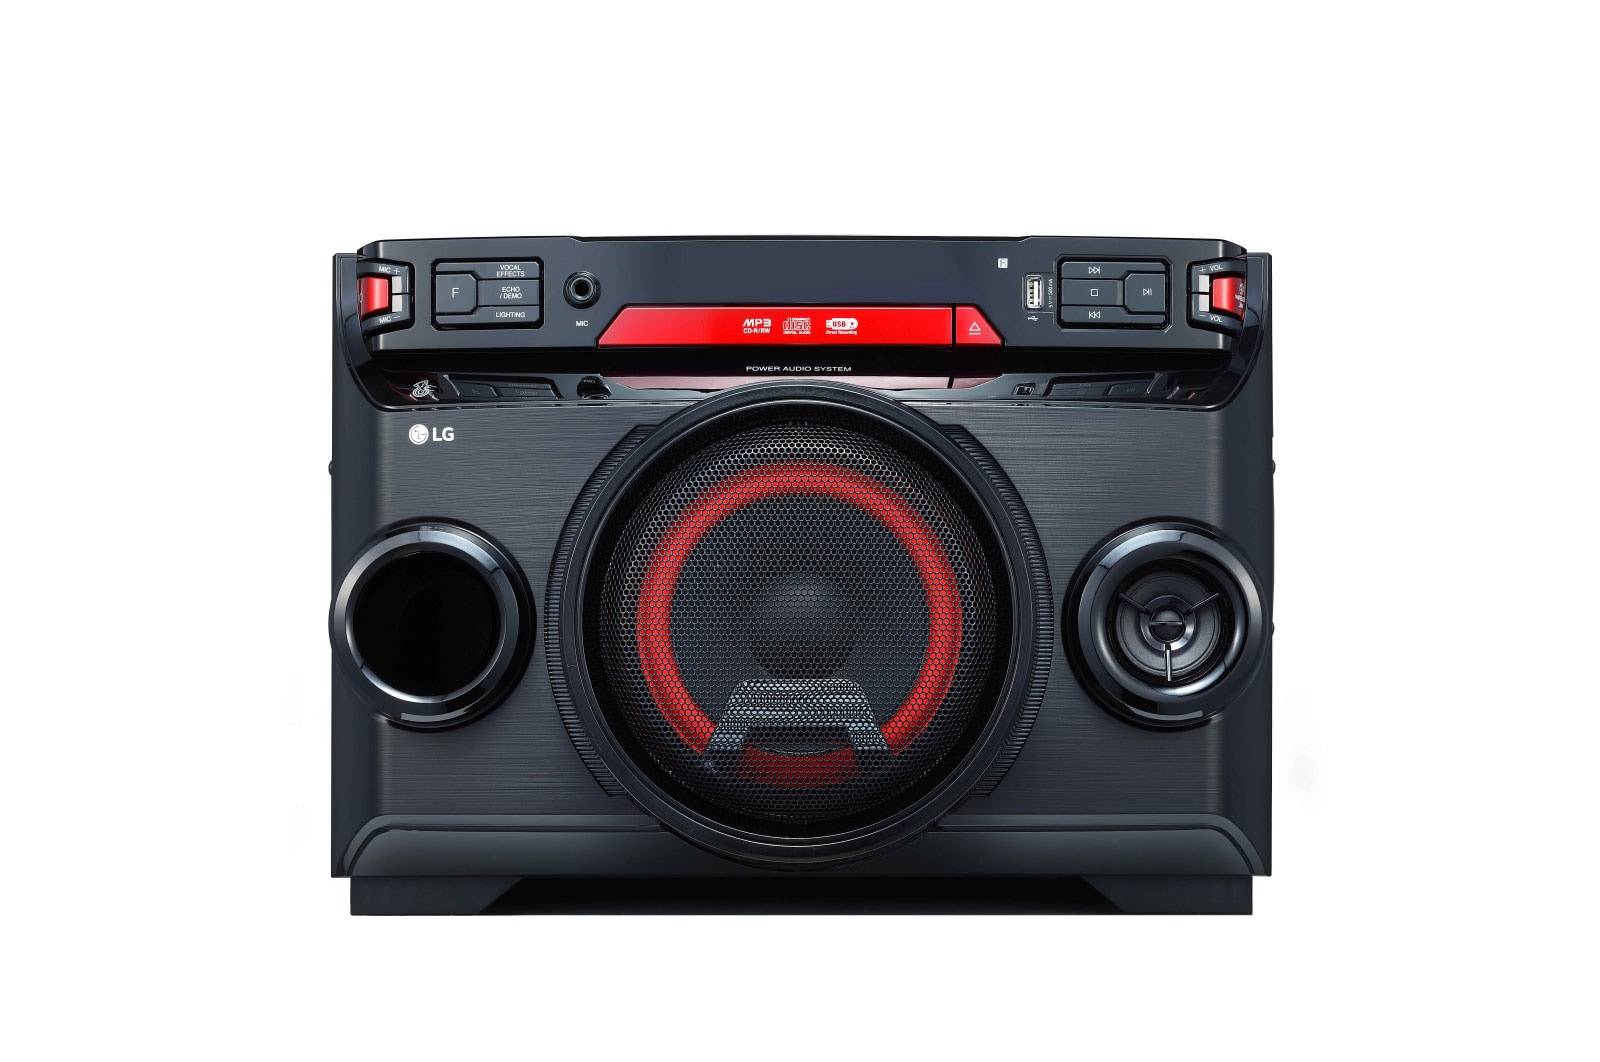 LG XBOOM OK45 All In One Mini System, Auto DJ | LG IN